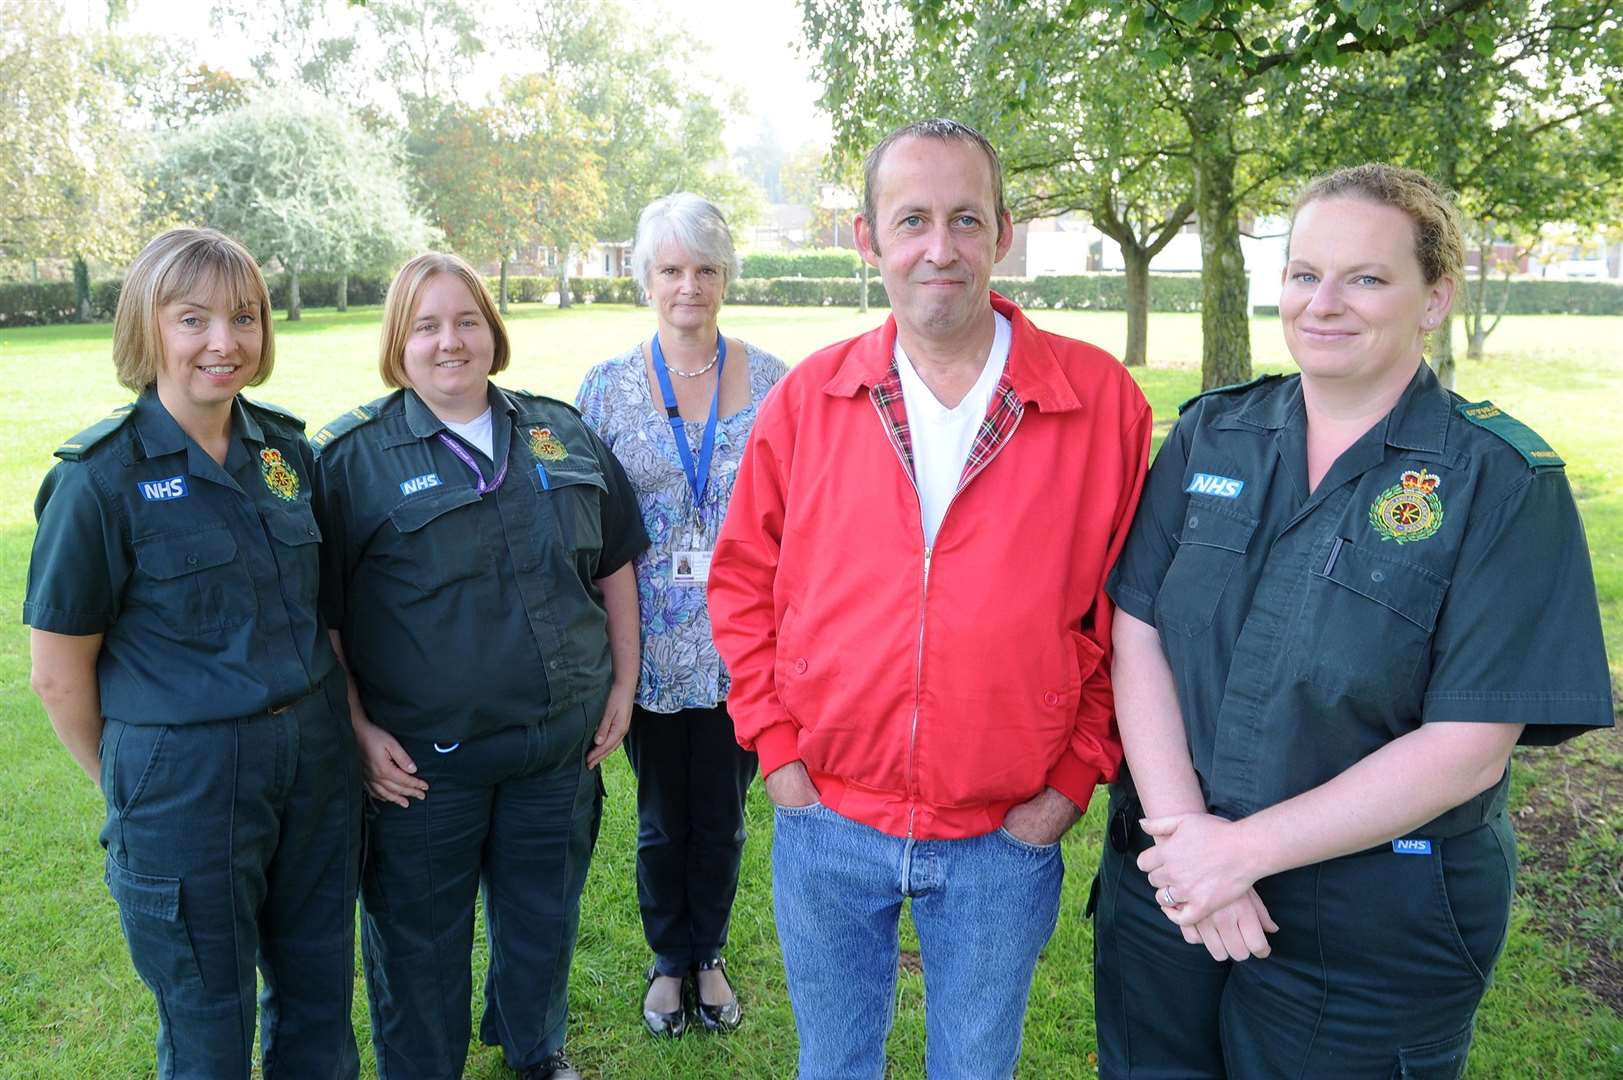 Paramedics returned to meet cardiac arrest survivor Richard Coxall in 2014, one year on from his brush with death. Pictured: Lisa Murkin (Paramedic), Frances Sewell (Emergency Medical Technician), Helen Wrigley (Occupational Therapist), Richard Coxall and Louise O'Connor (Paramedic).